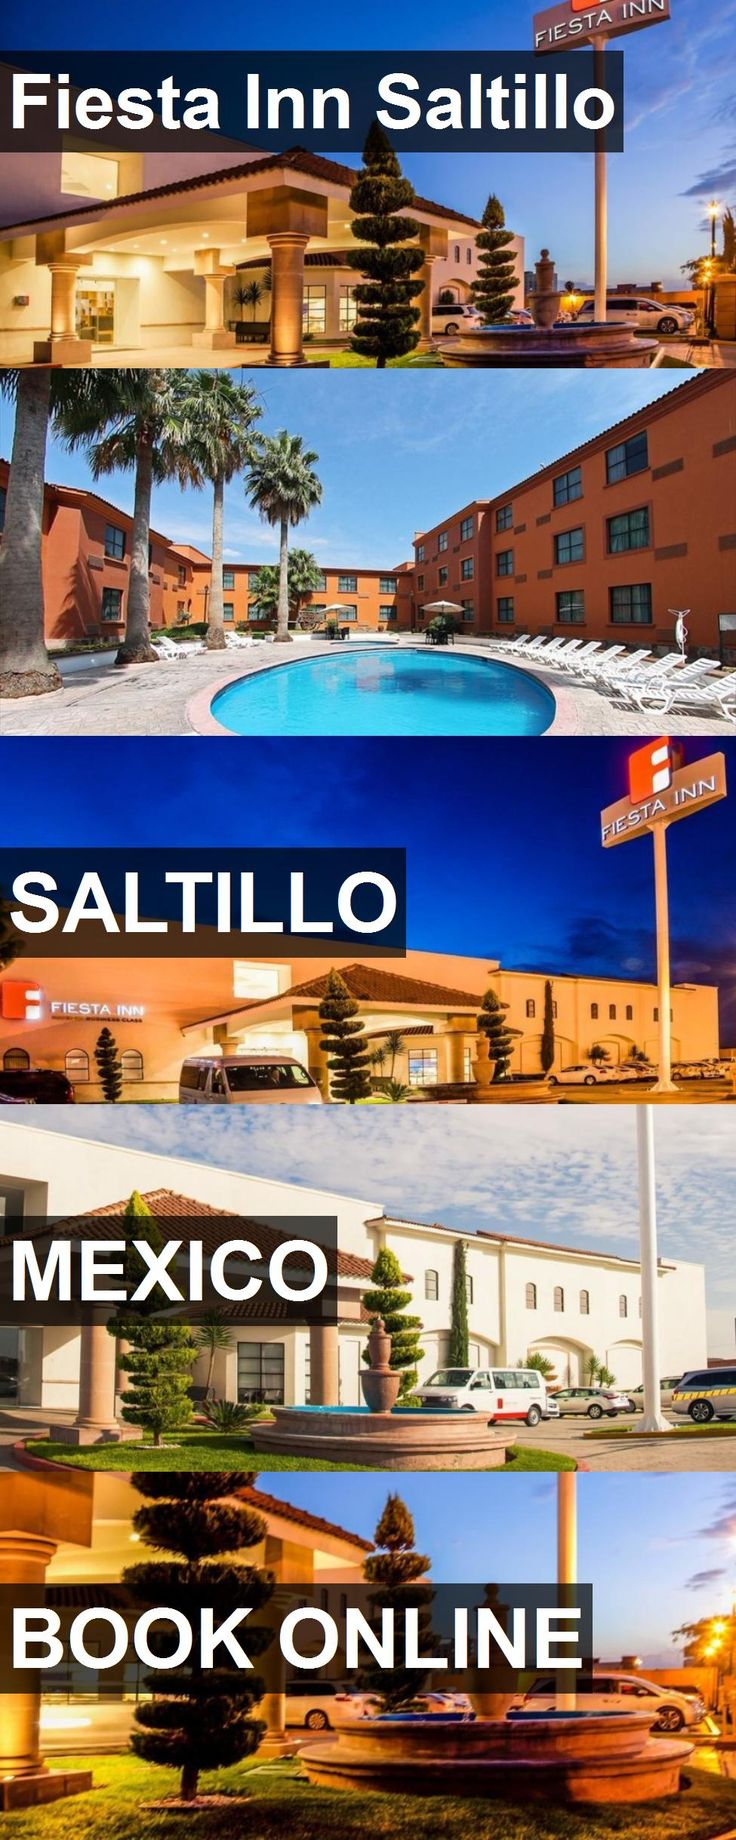 Hotel Fiesta Inn Saltillo in Saltillo, Mexico. For more information, photos, reviews and best prices please follow the link. #Mexico #Saltillo #travel #vacation #hotel